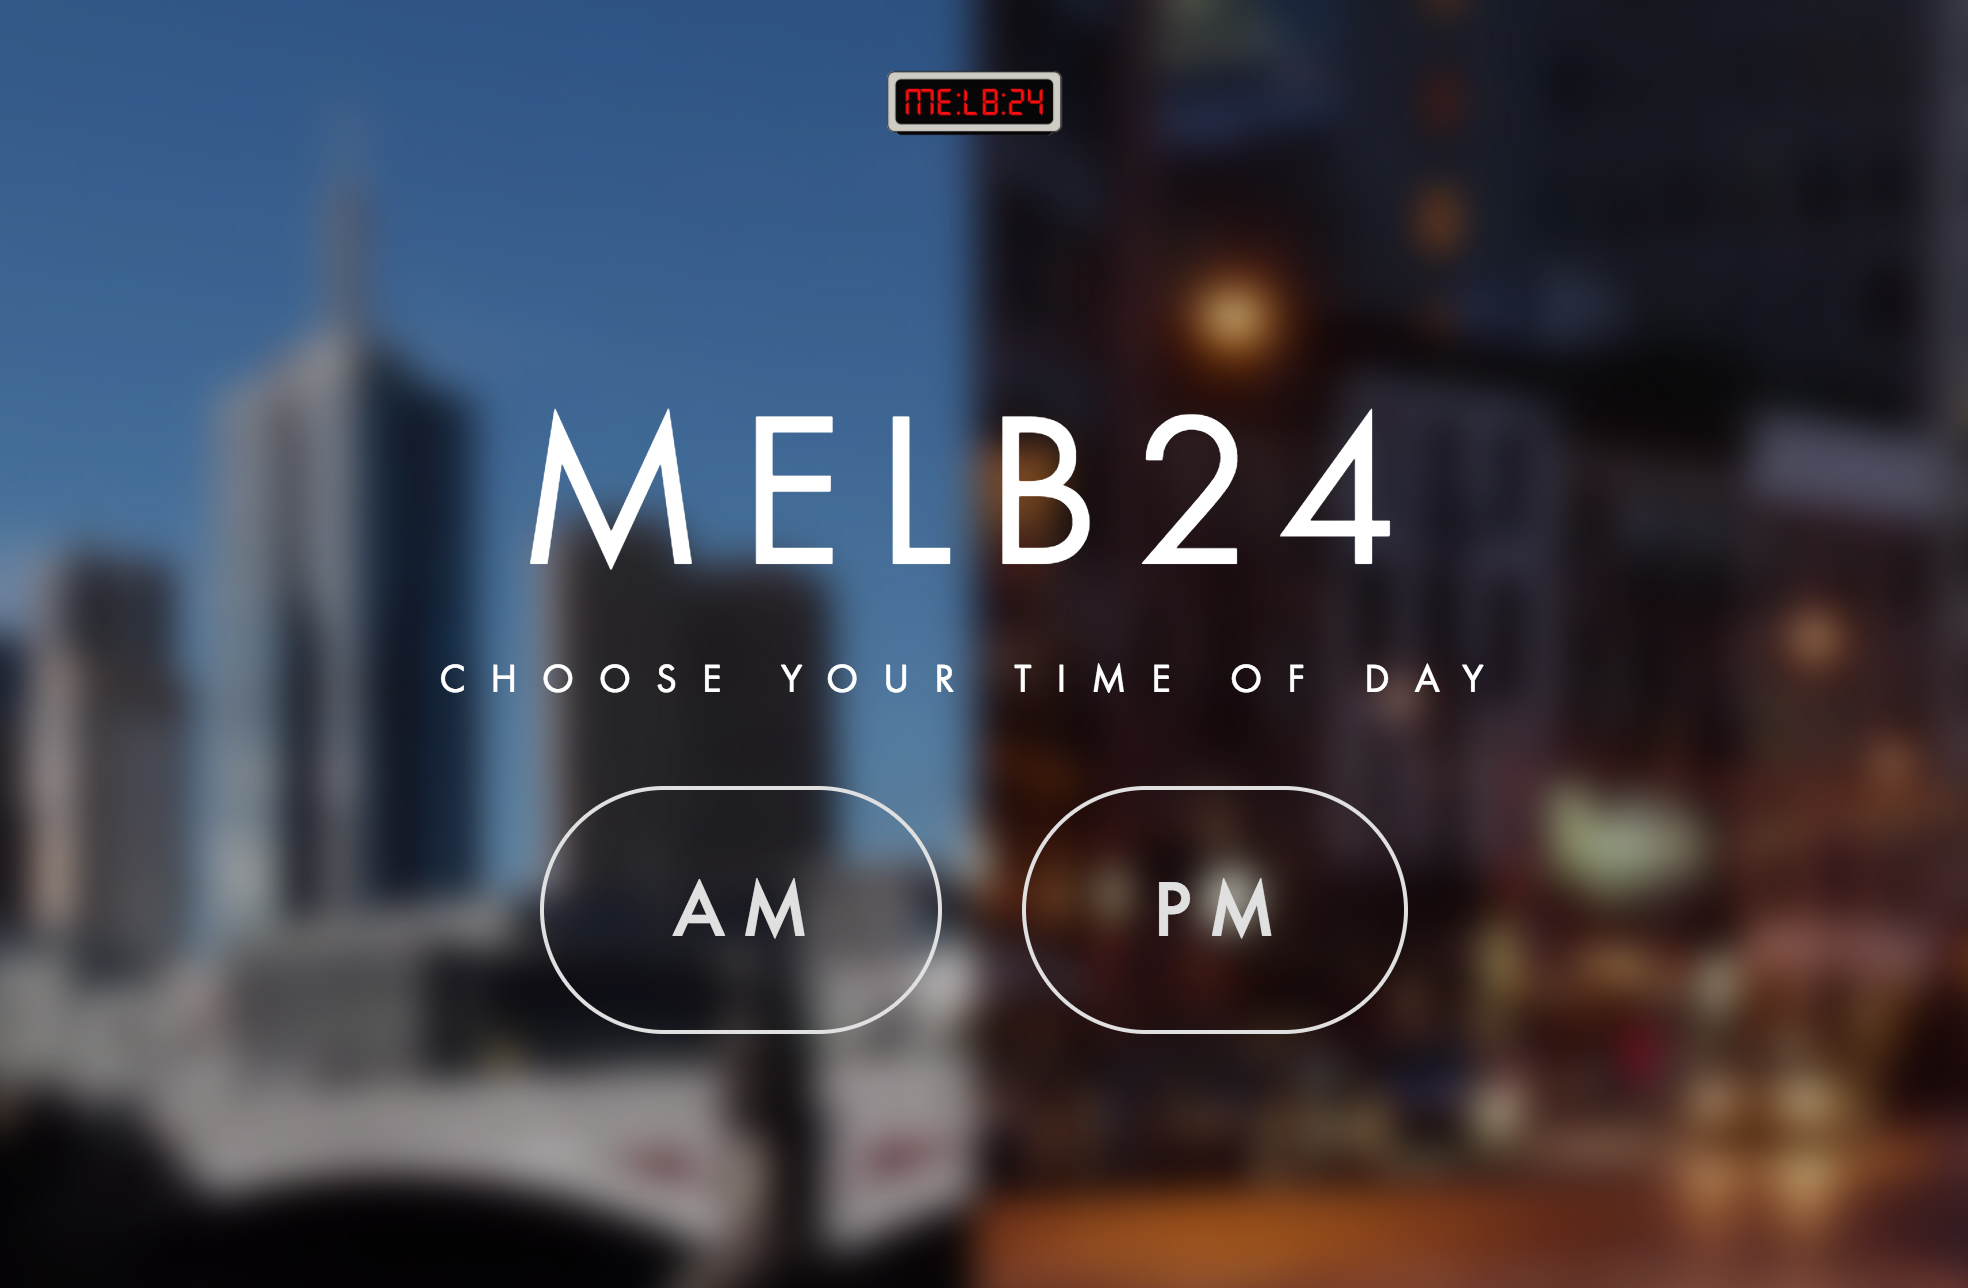 MELB24 is an unforgettable moment - 24 stories over 24 hours.